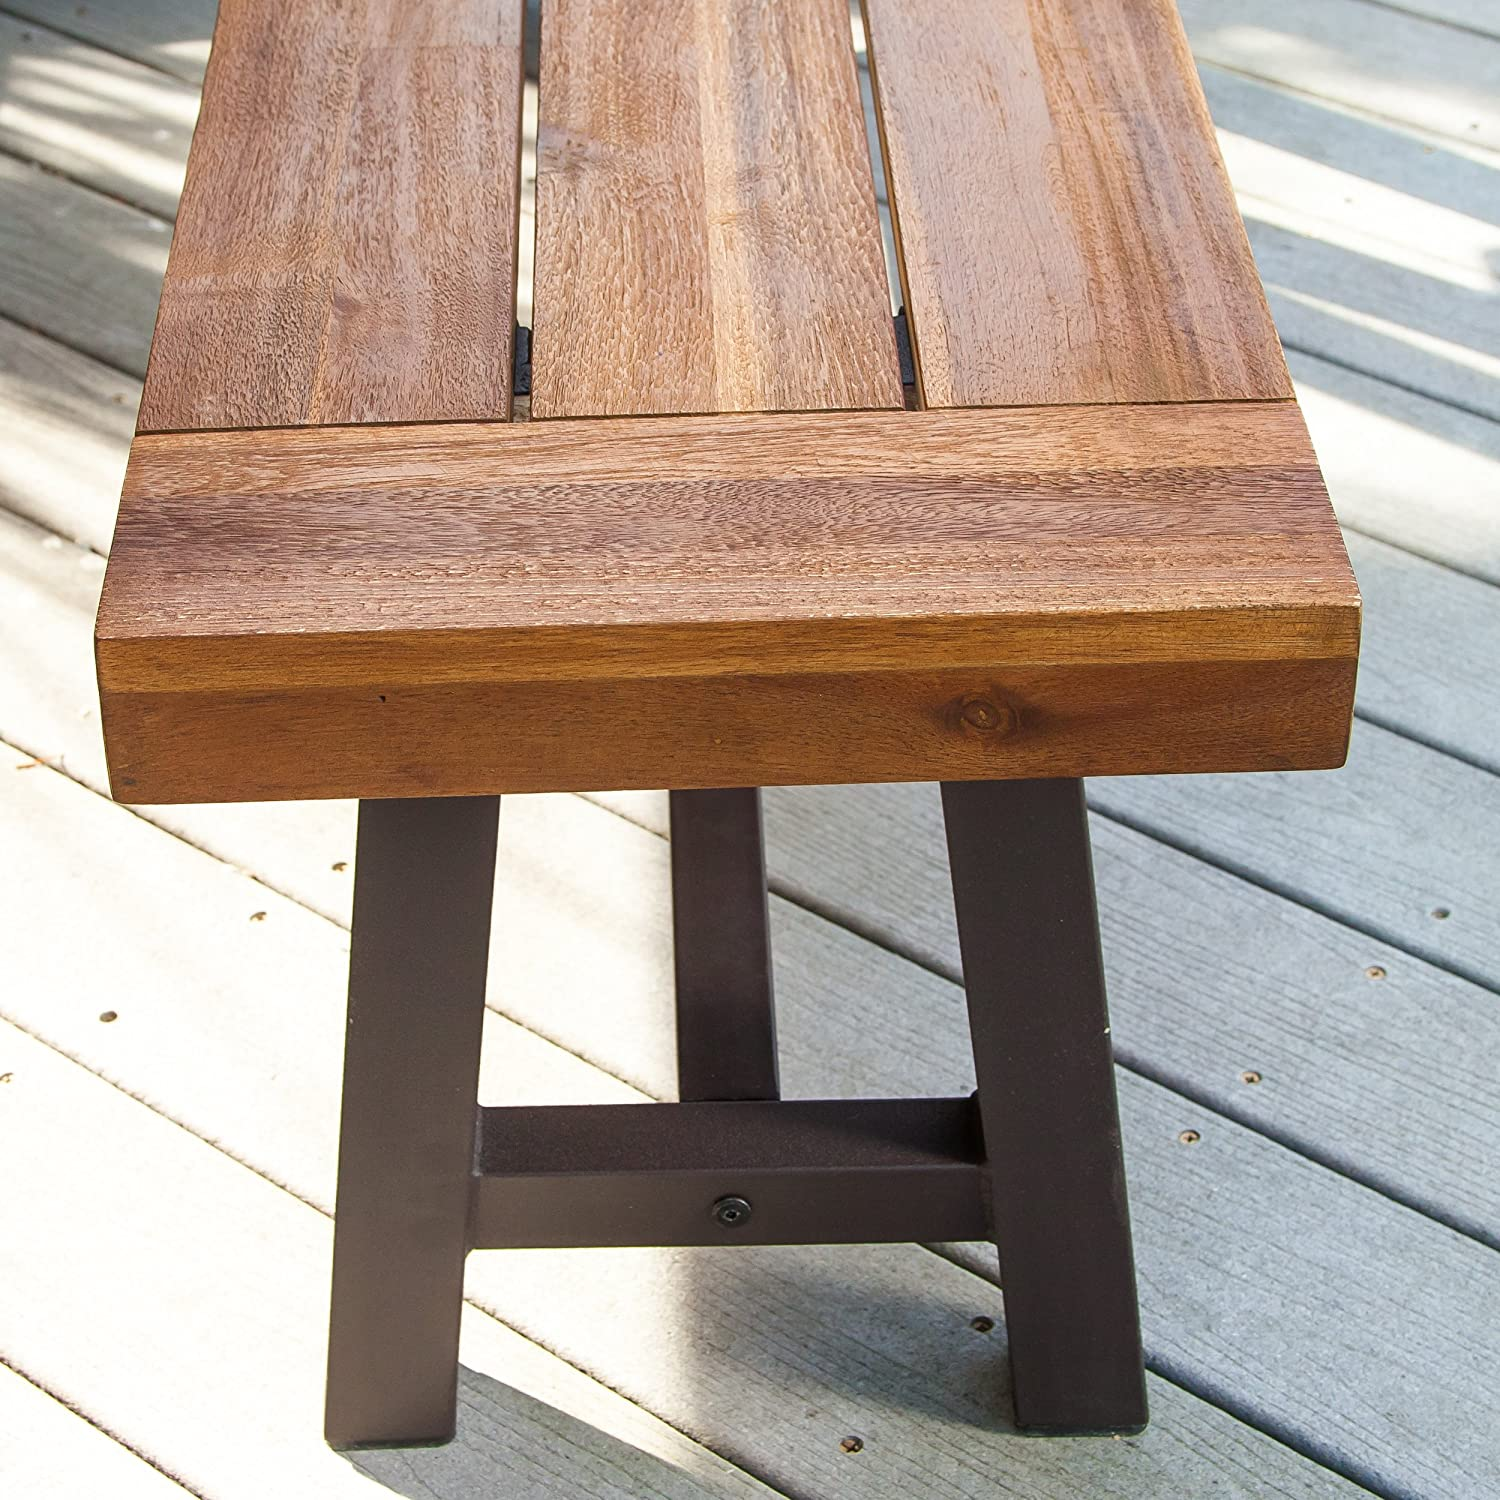 Amazoncom Christopher Knight Home Bowman Wood Outdoor - Picnic table with removable benches